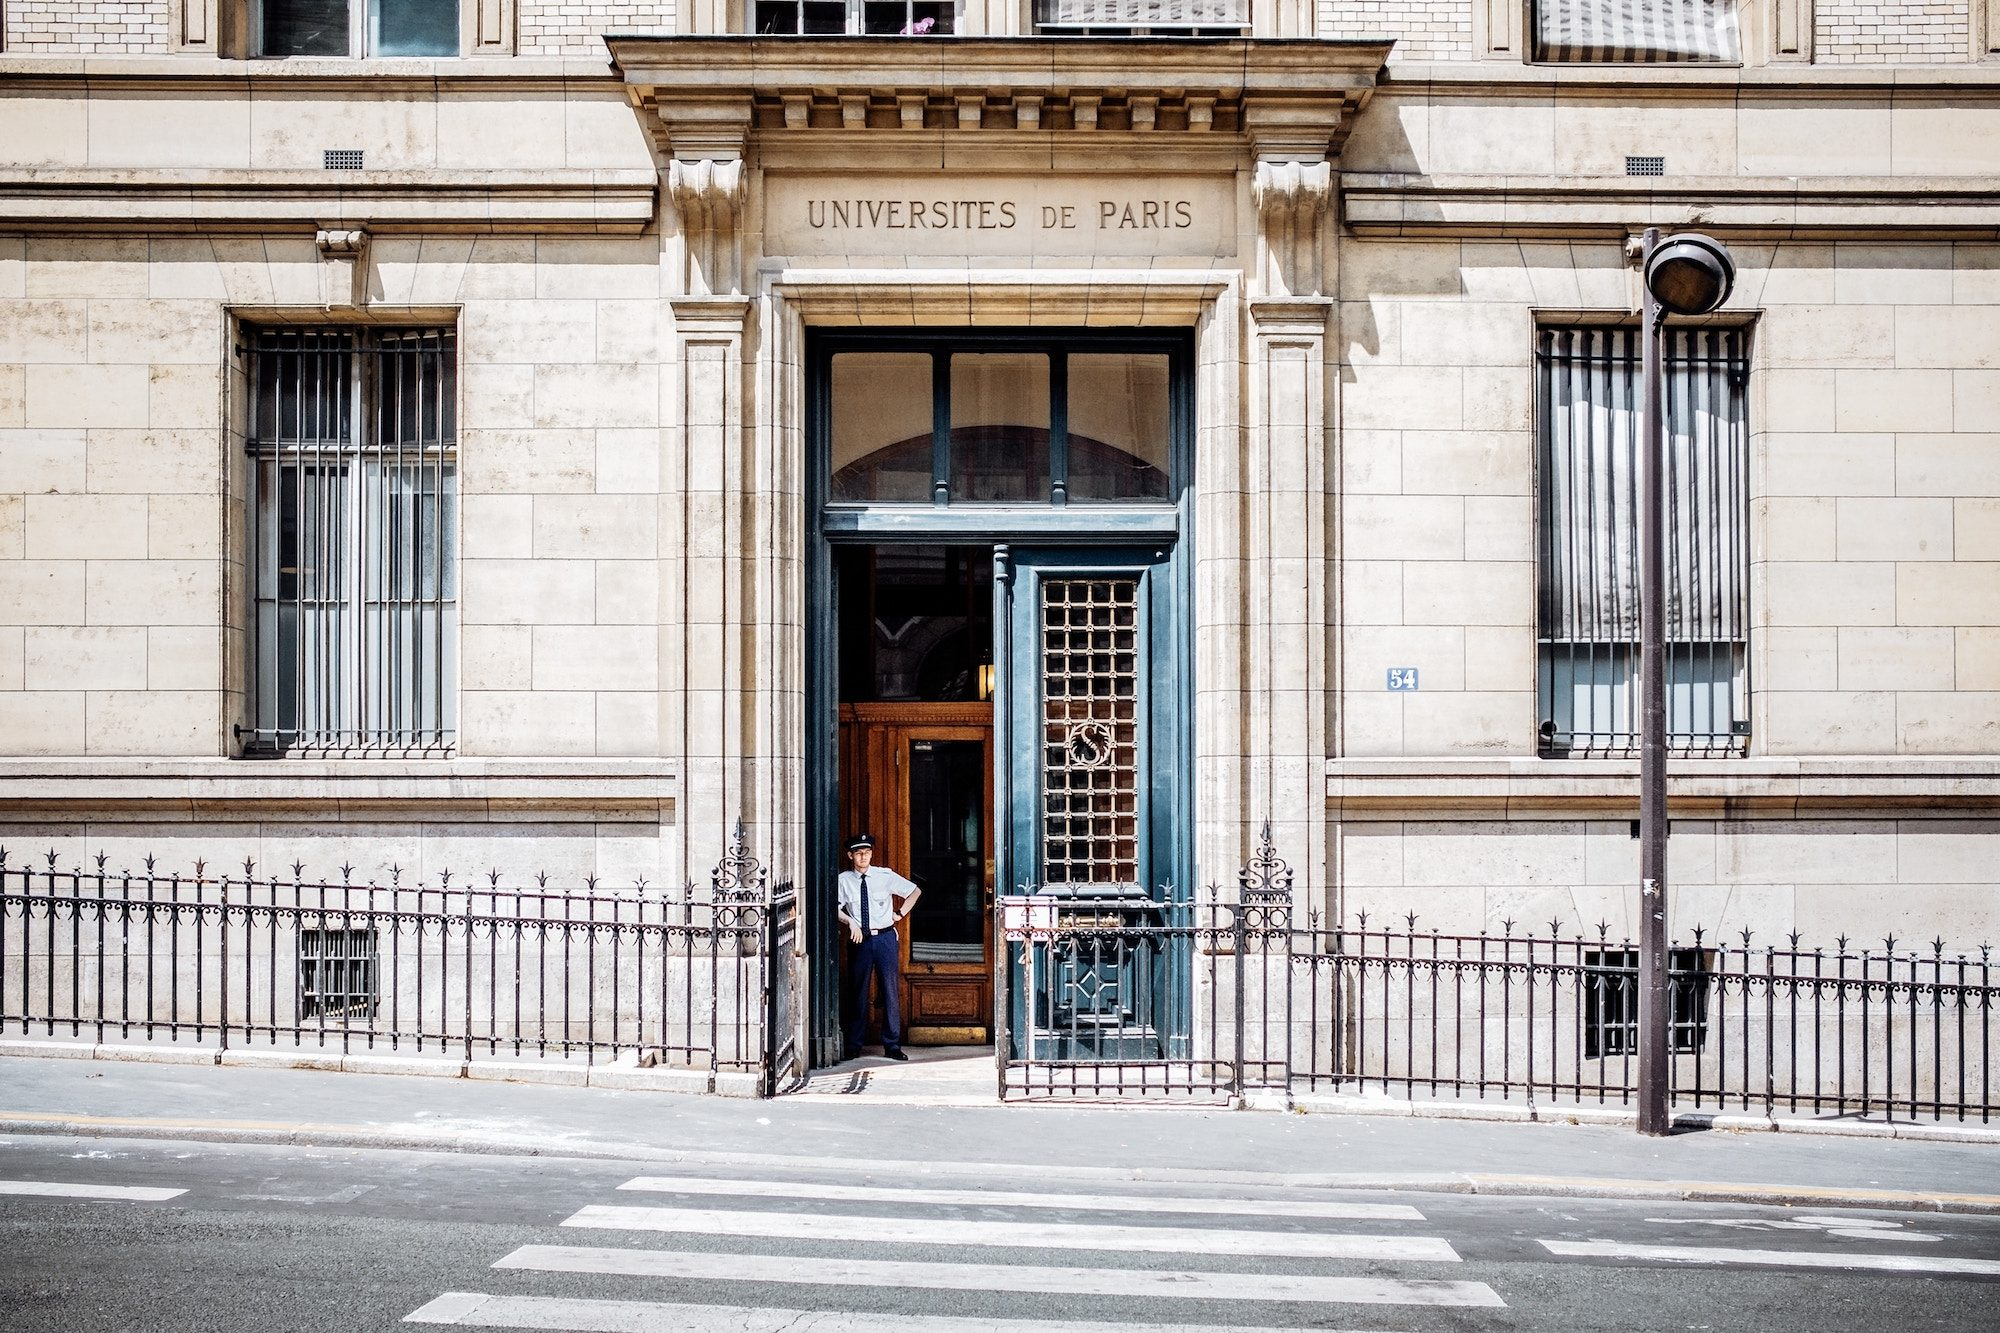 HiP Paris Blog tells the story of la rentrée, the time before everyone is back from the summer holidays, and the streets are empty of people, like outside this university with a guard standing outside.